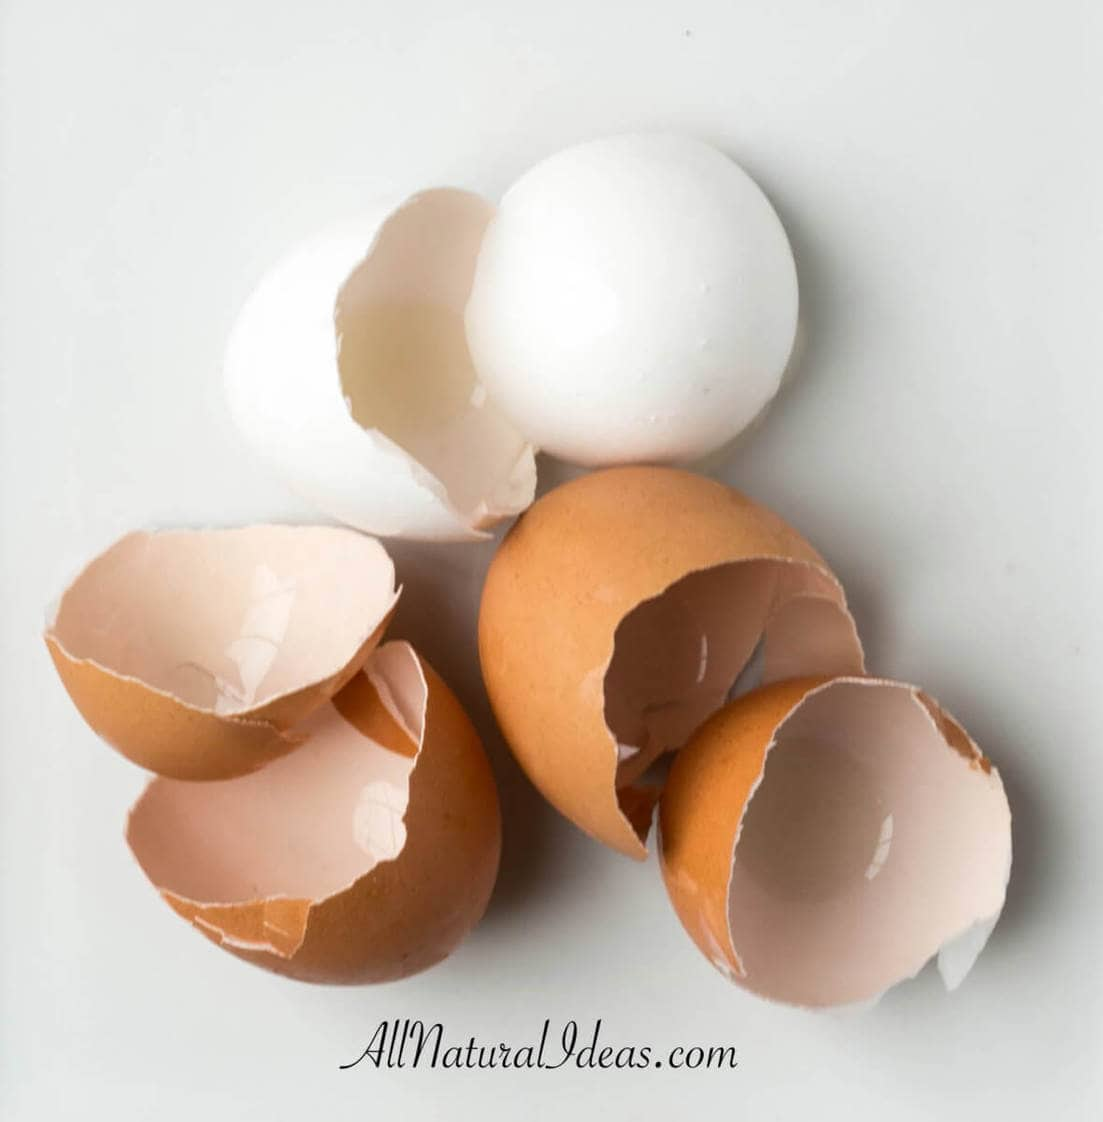 Recycling egg shells